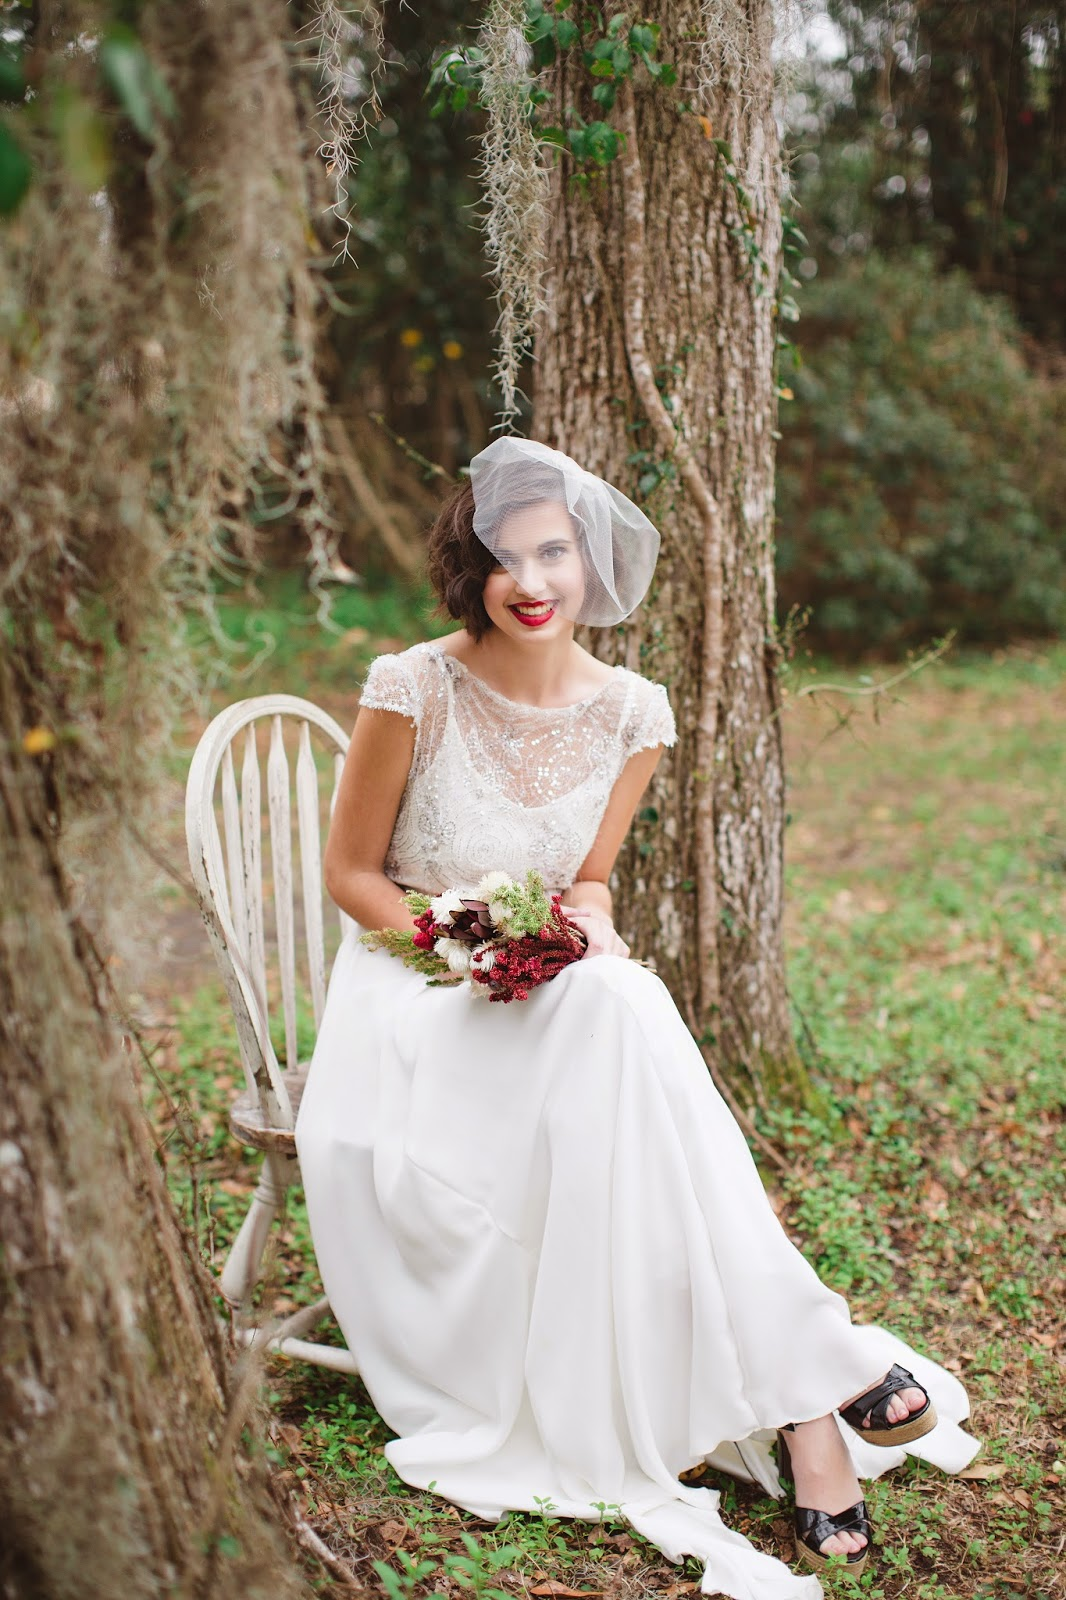 All Dresses Available At Ivory Beau Photography Izzy Hudgins Hair Makeup Michelle Royal By Sarah